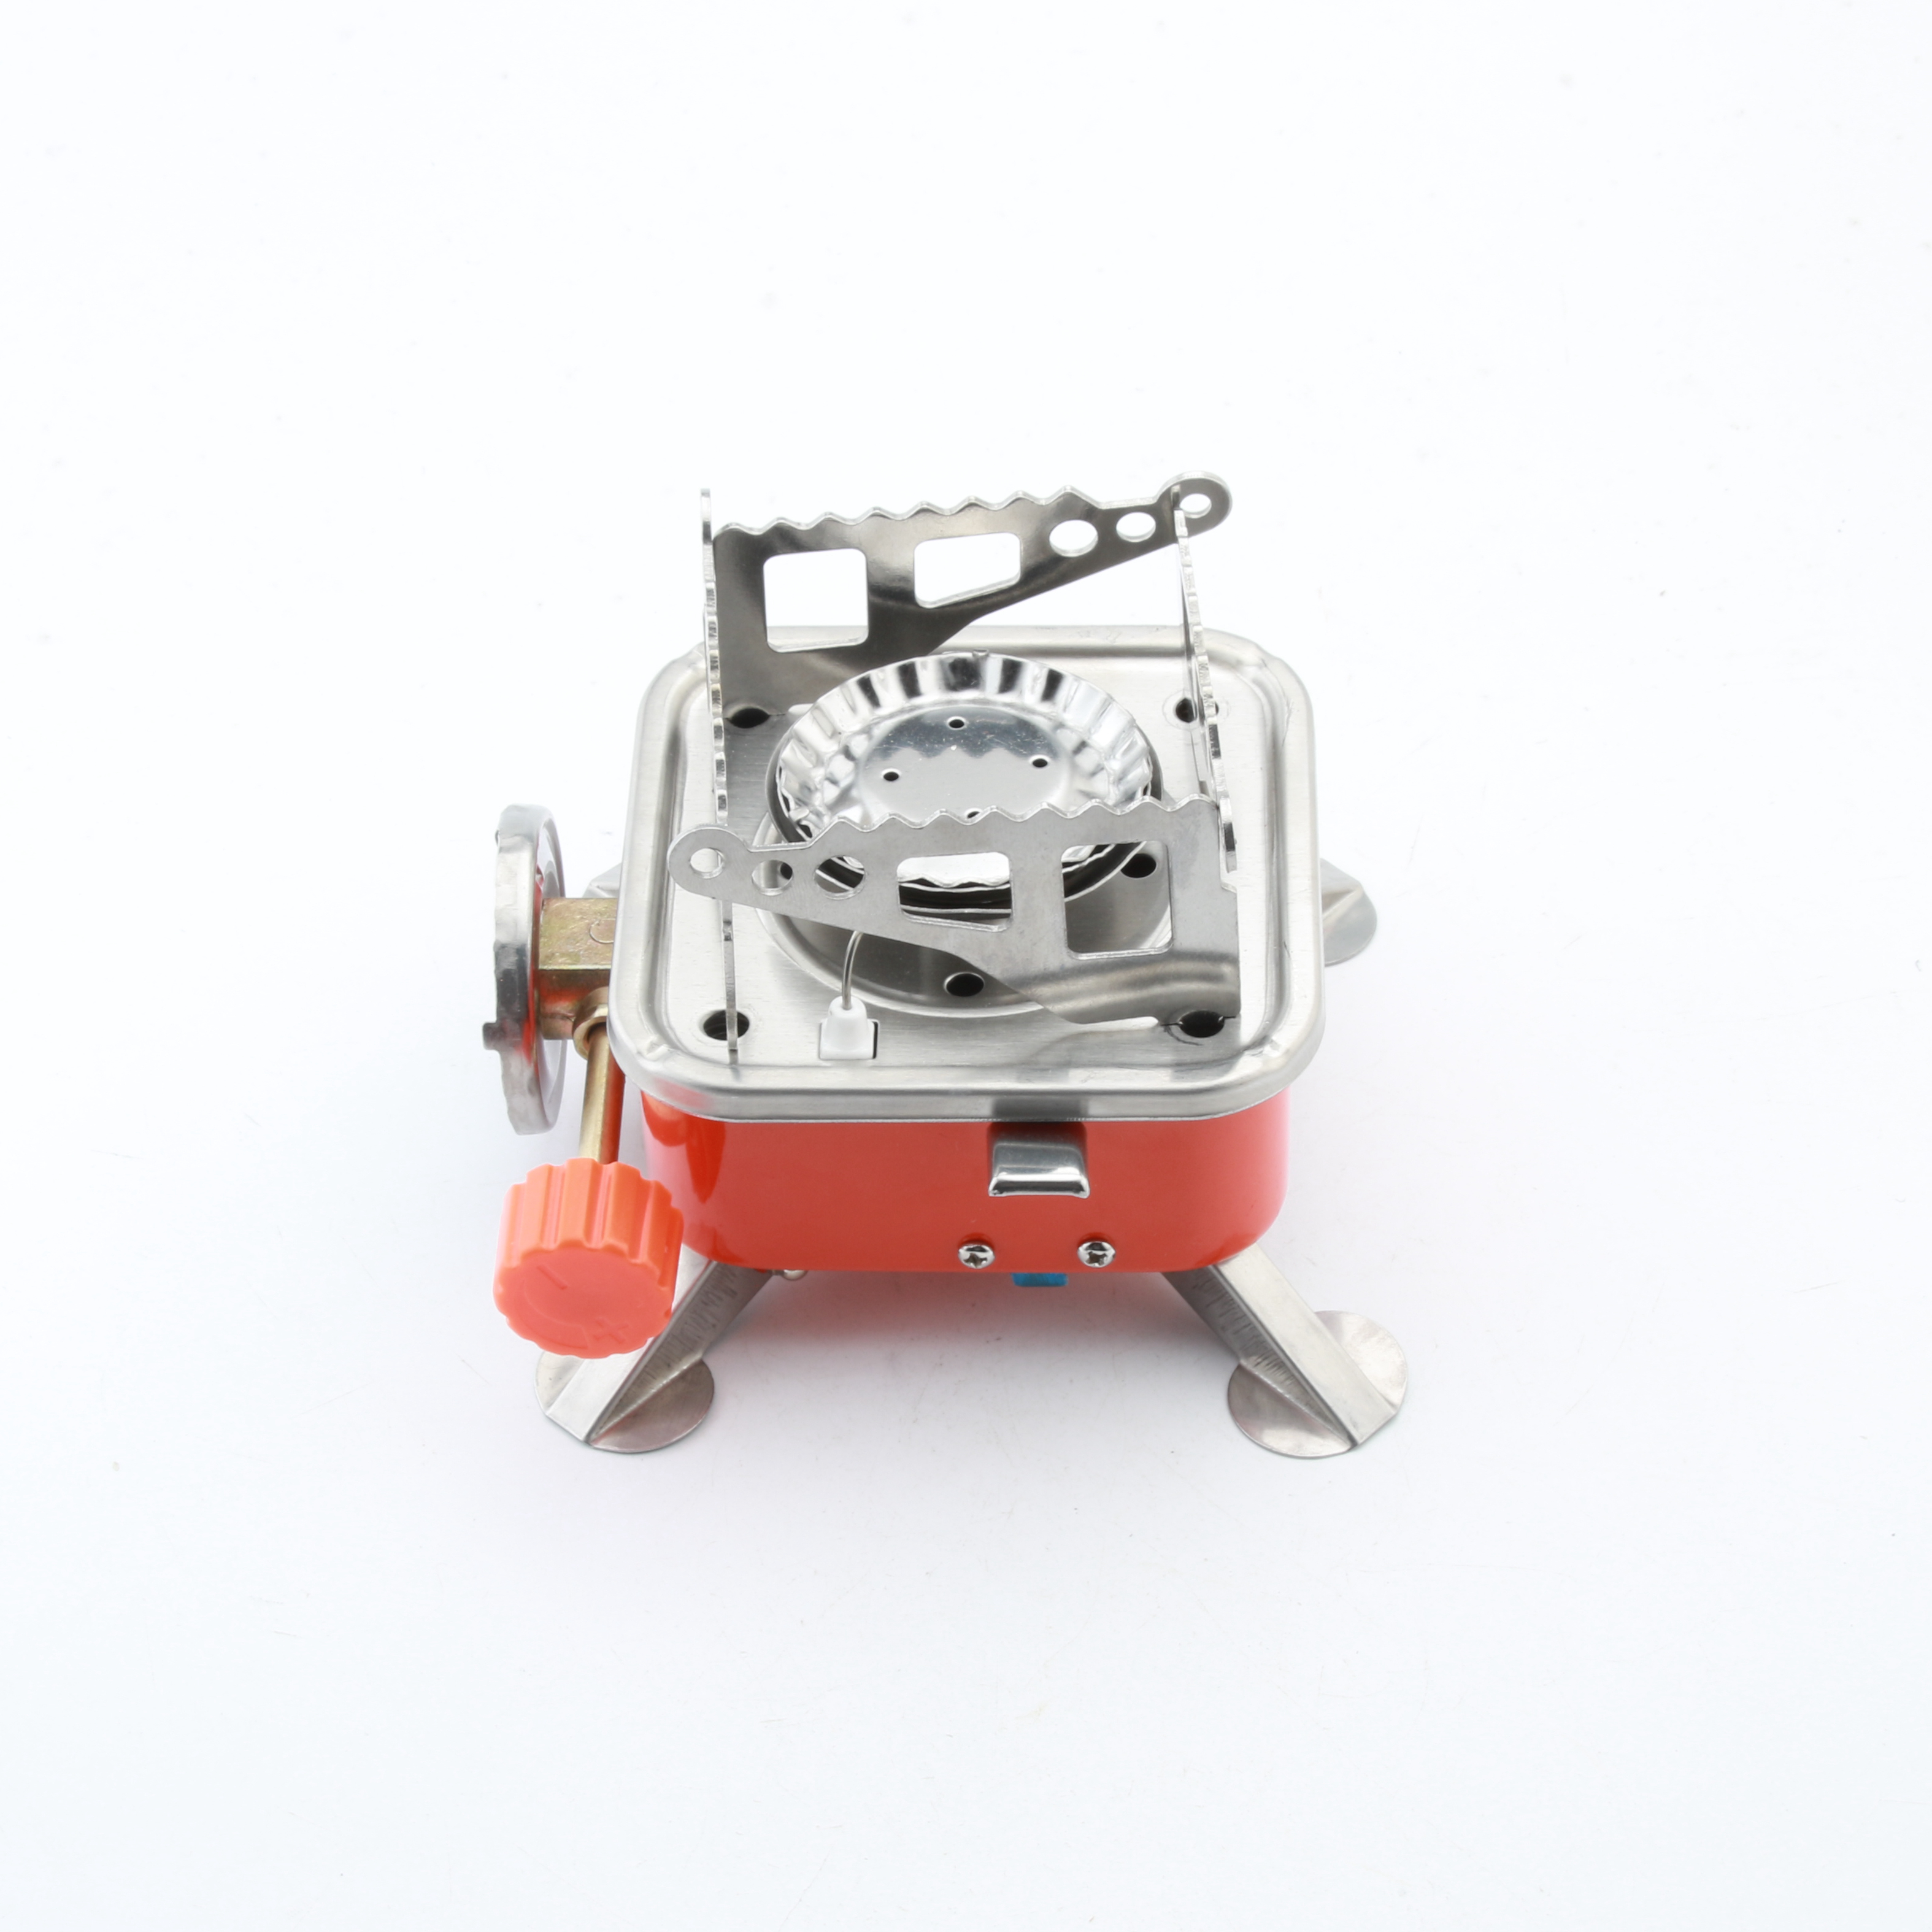 Hot sale Mini Portable Outdoor Camping Gas Stove